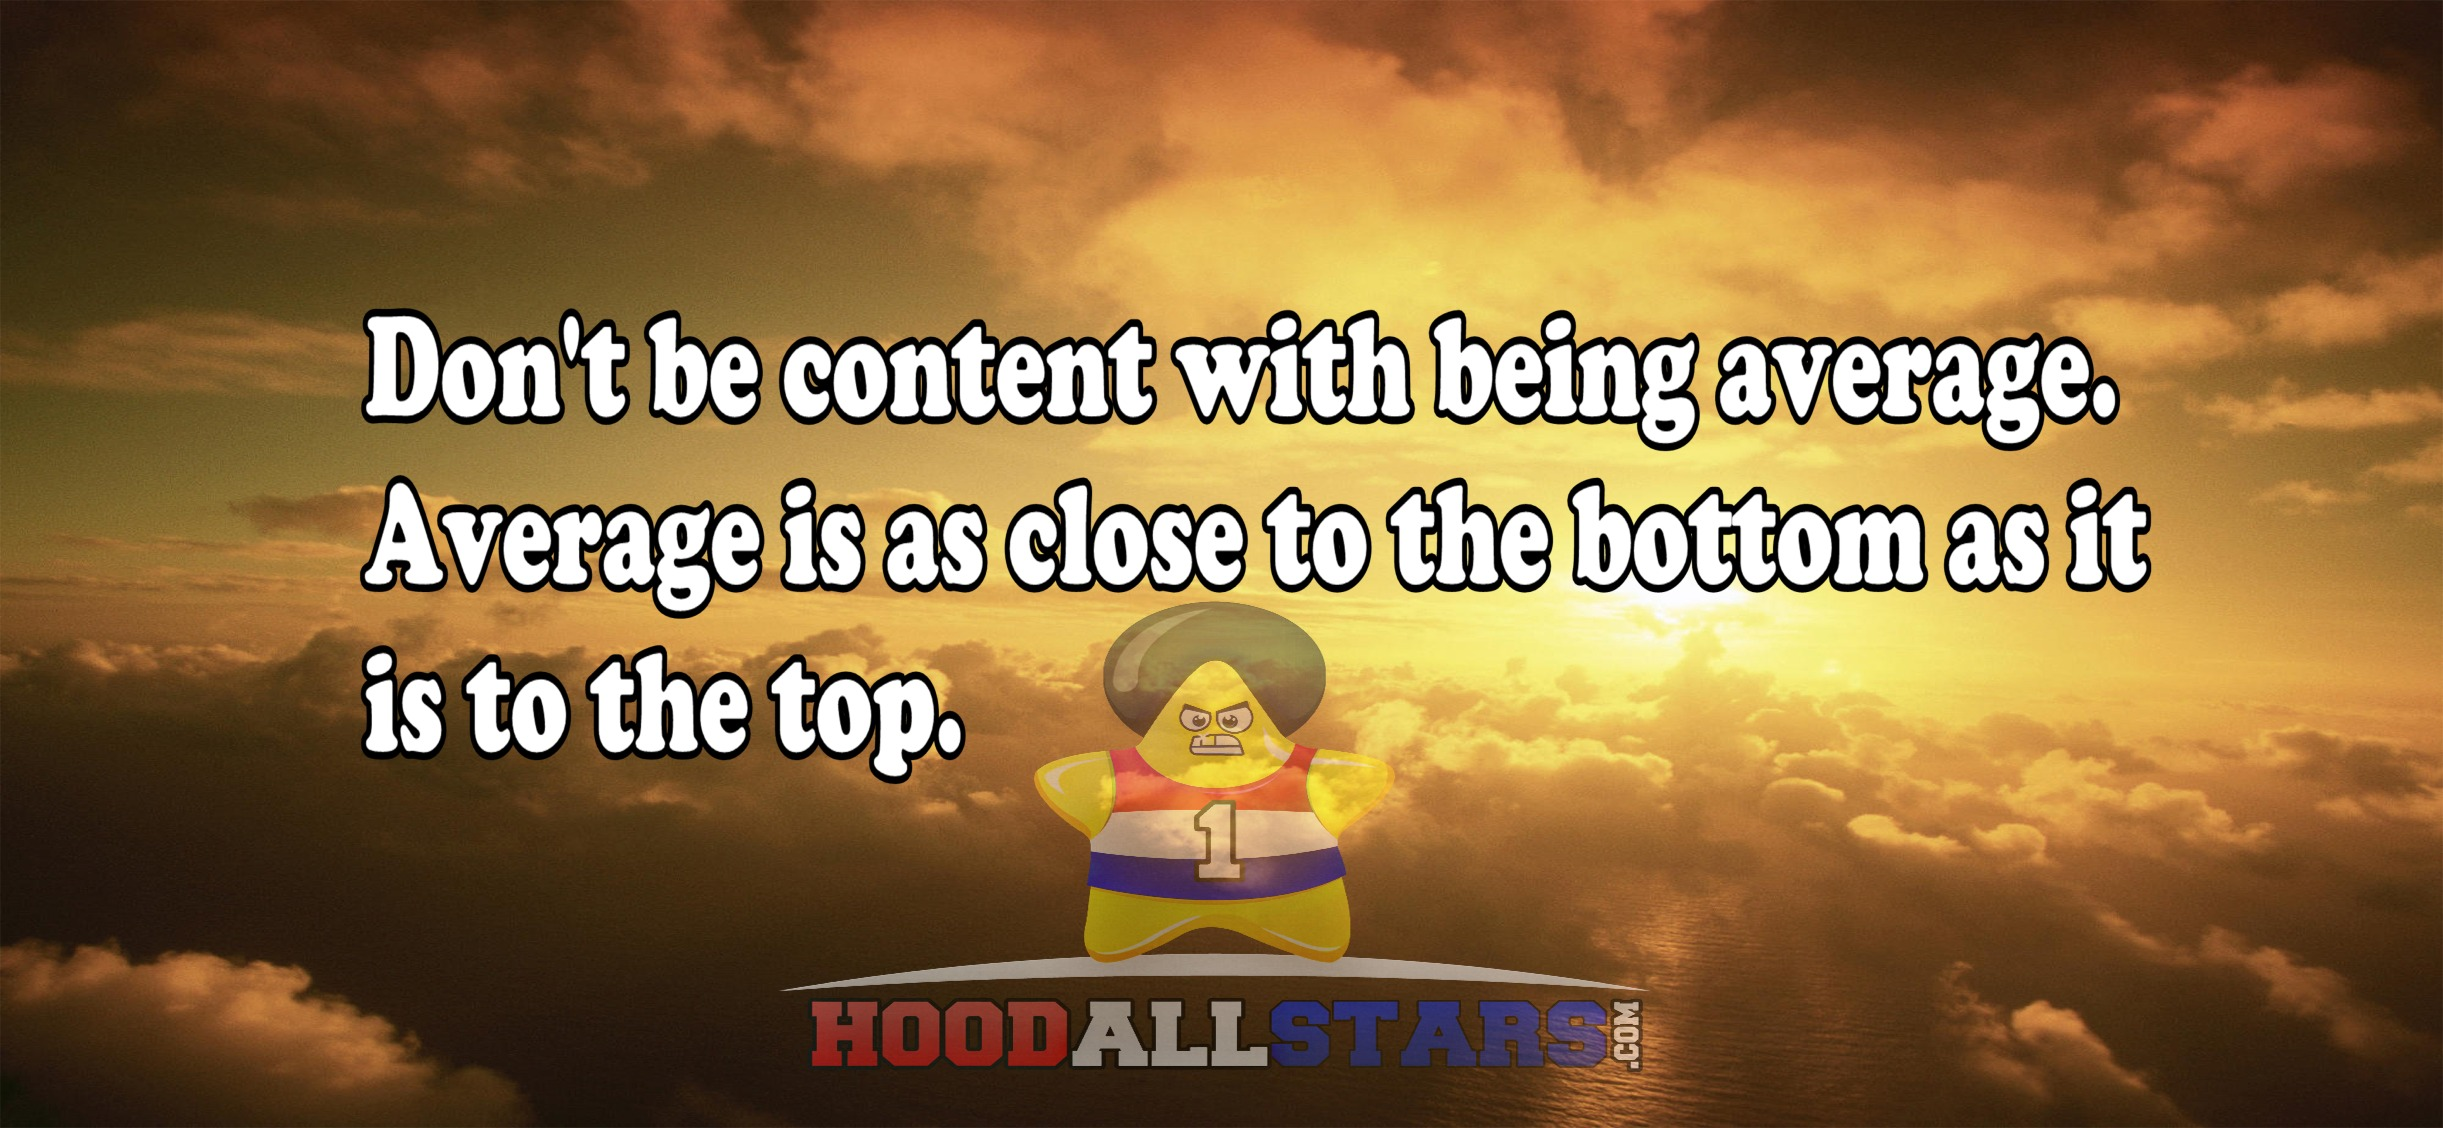 Real Life Hood Quotes: Hood Quotes Inspirational. QuotesGram